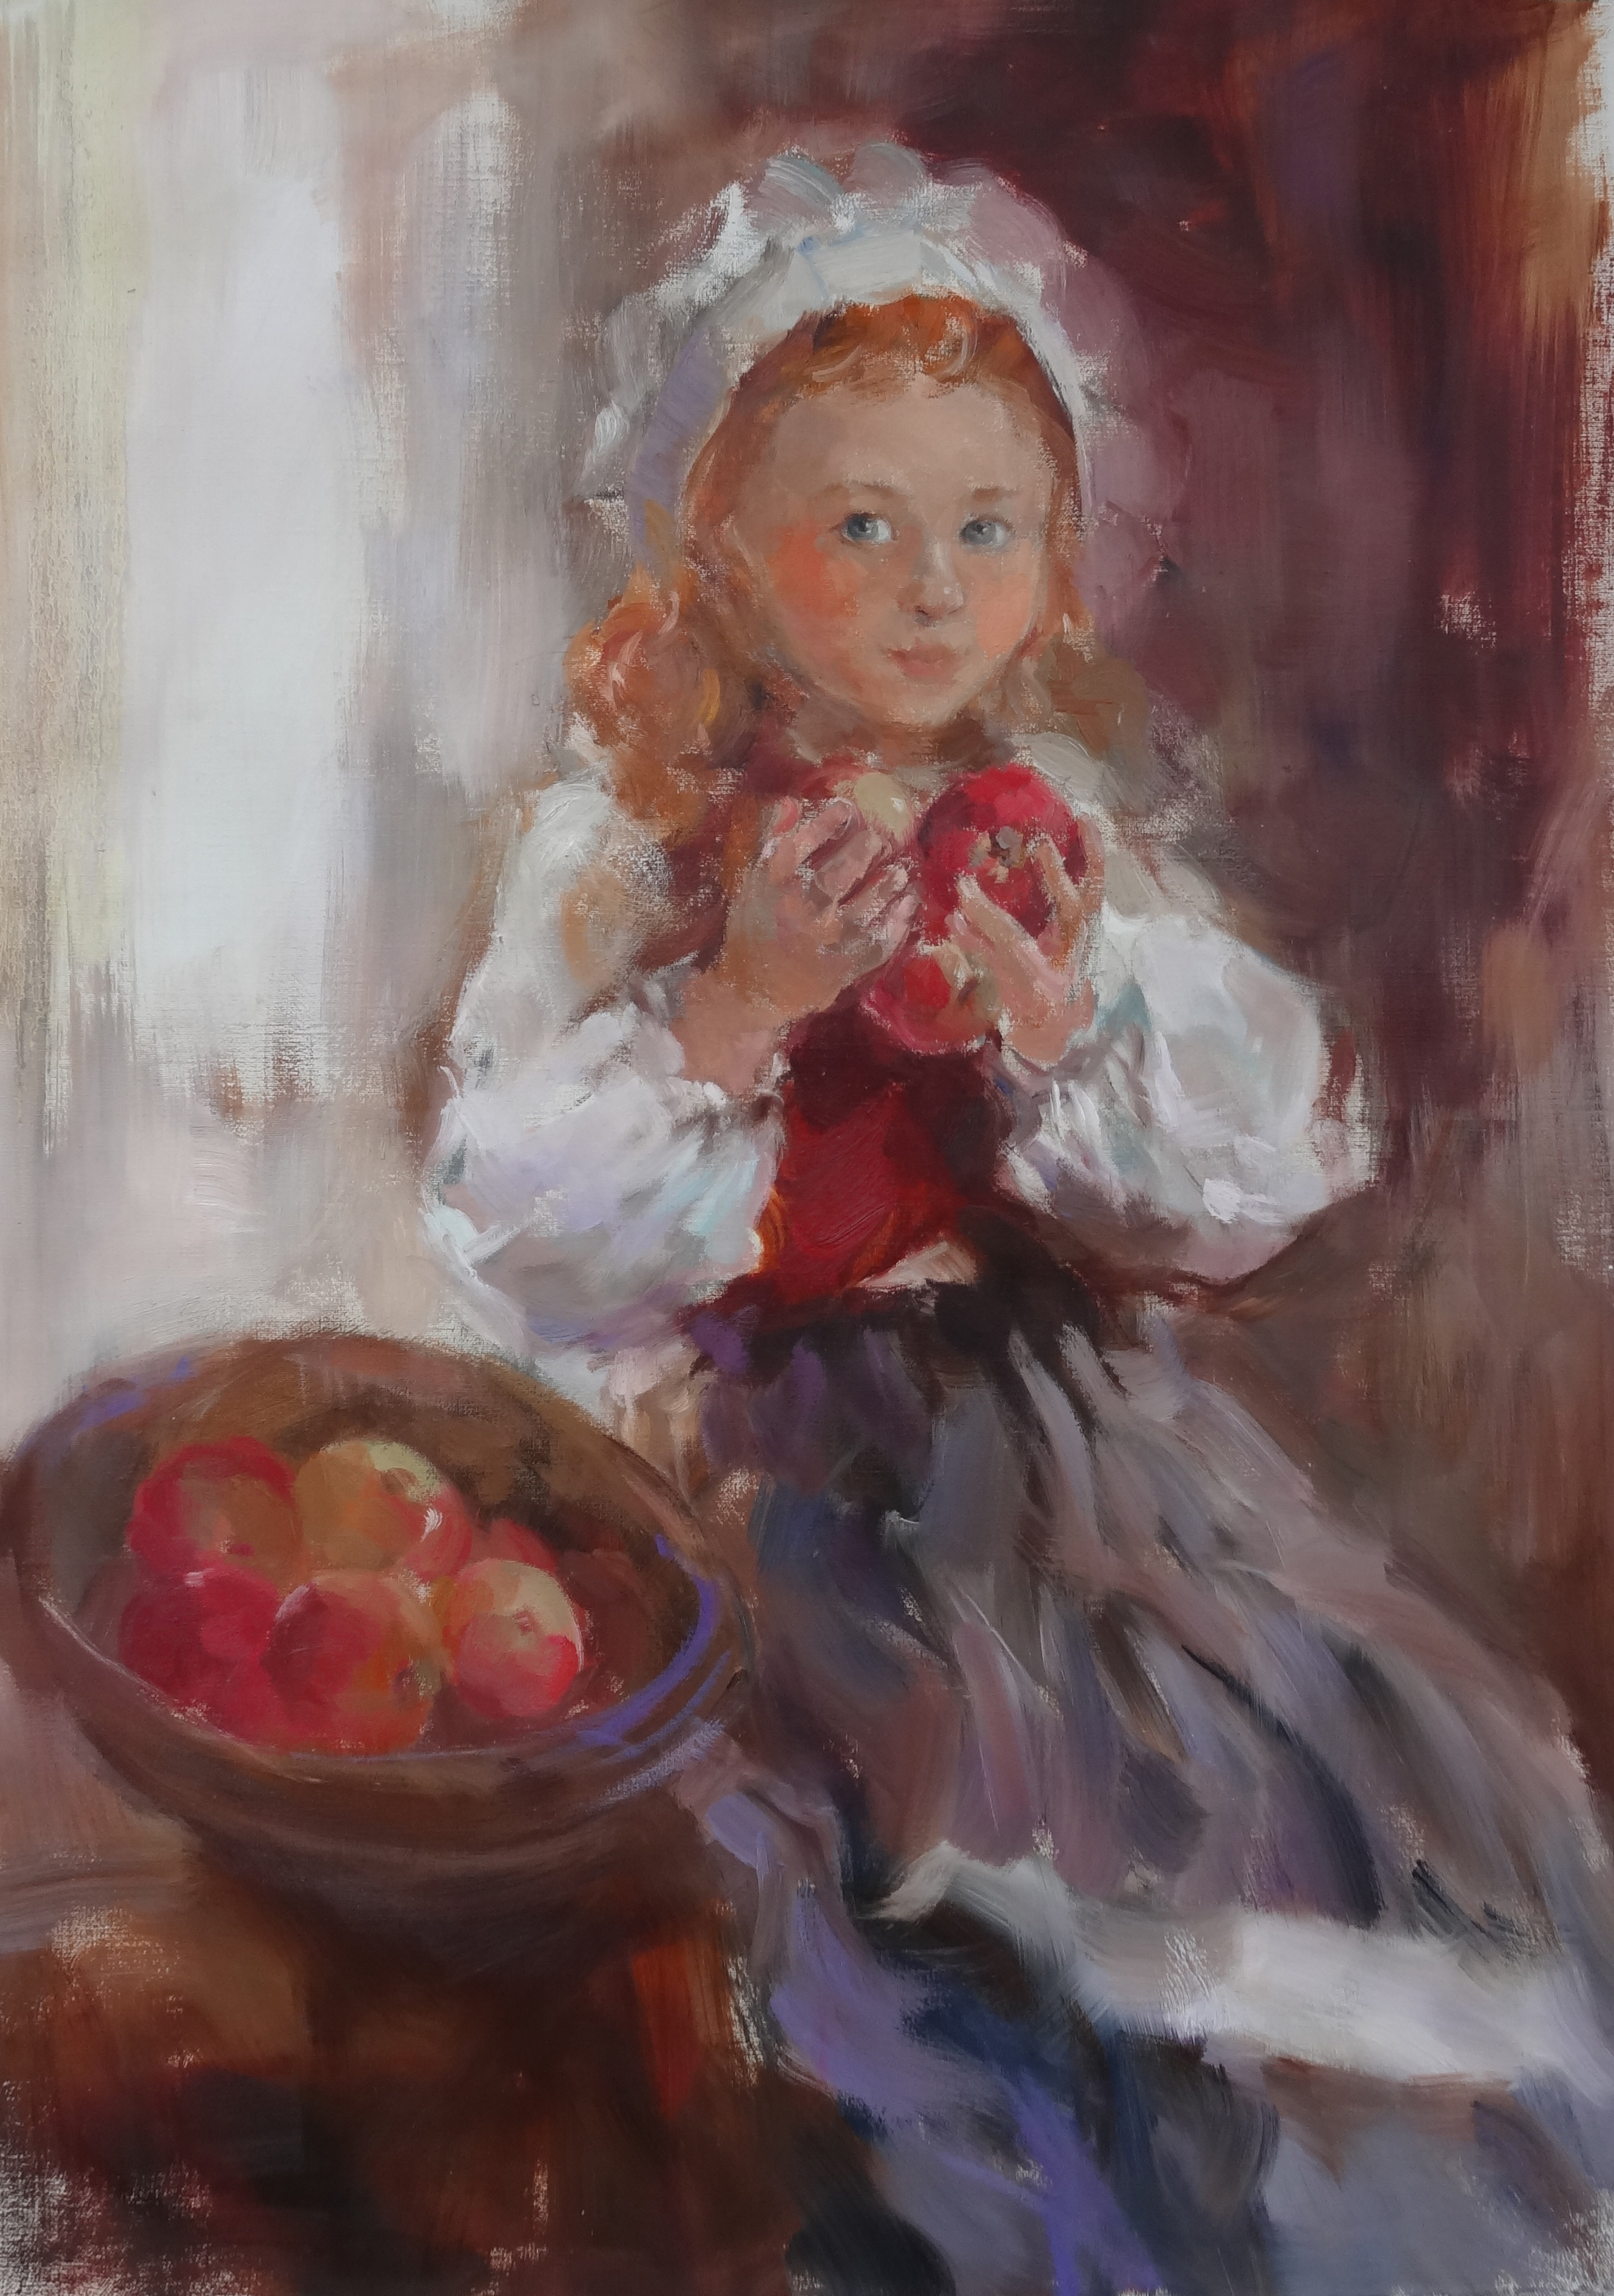 Littlegirlwithapples.jpg